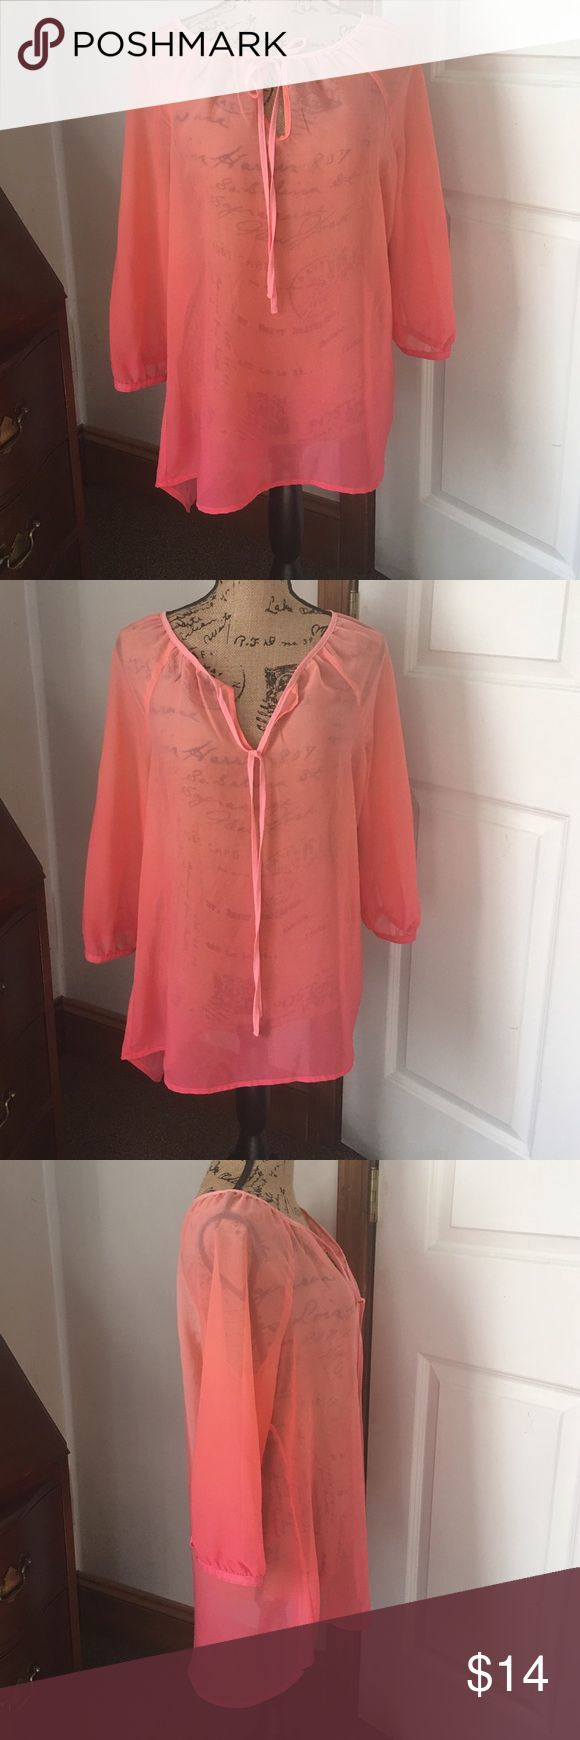 NWT A.N.A Coral Blouse New with tag-A.N.A coral blouse. Sheer blouse with button sleeves. The front allows you to tie the strings or leave untied to reveal your cami choice. A.N.A Tops Blouses